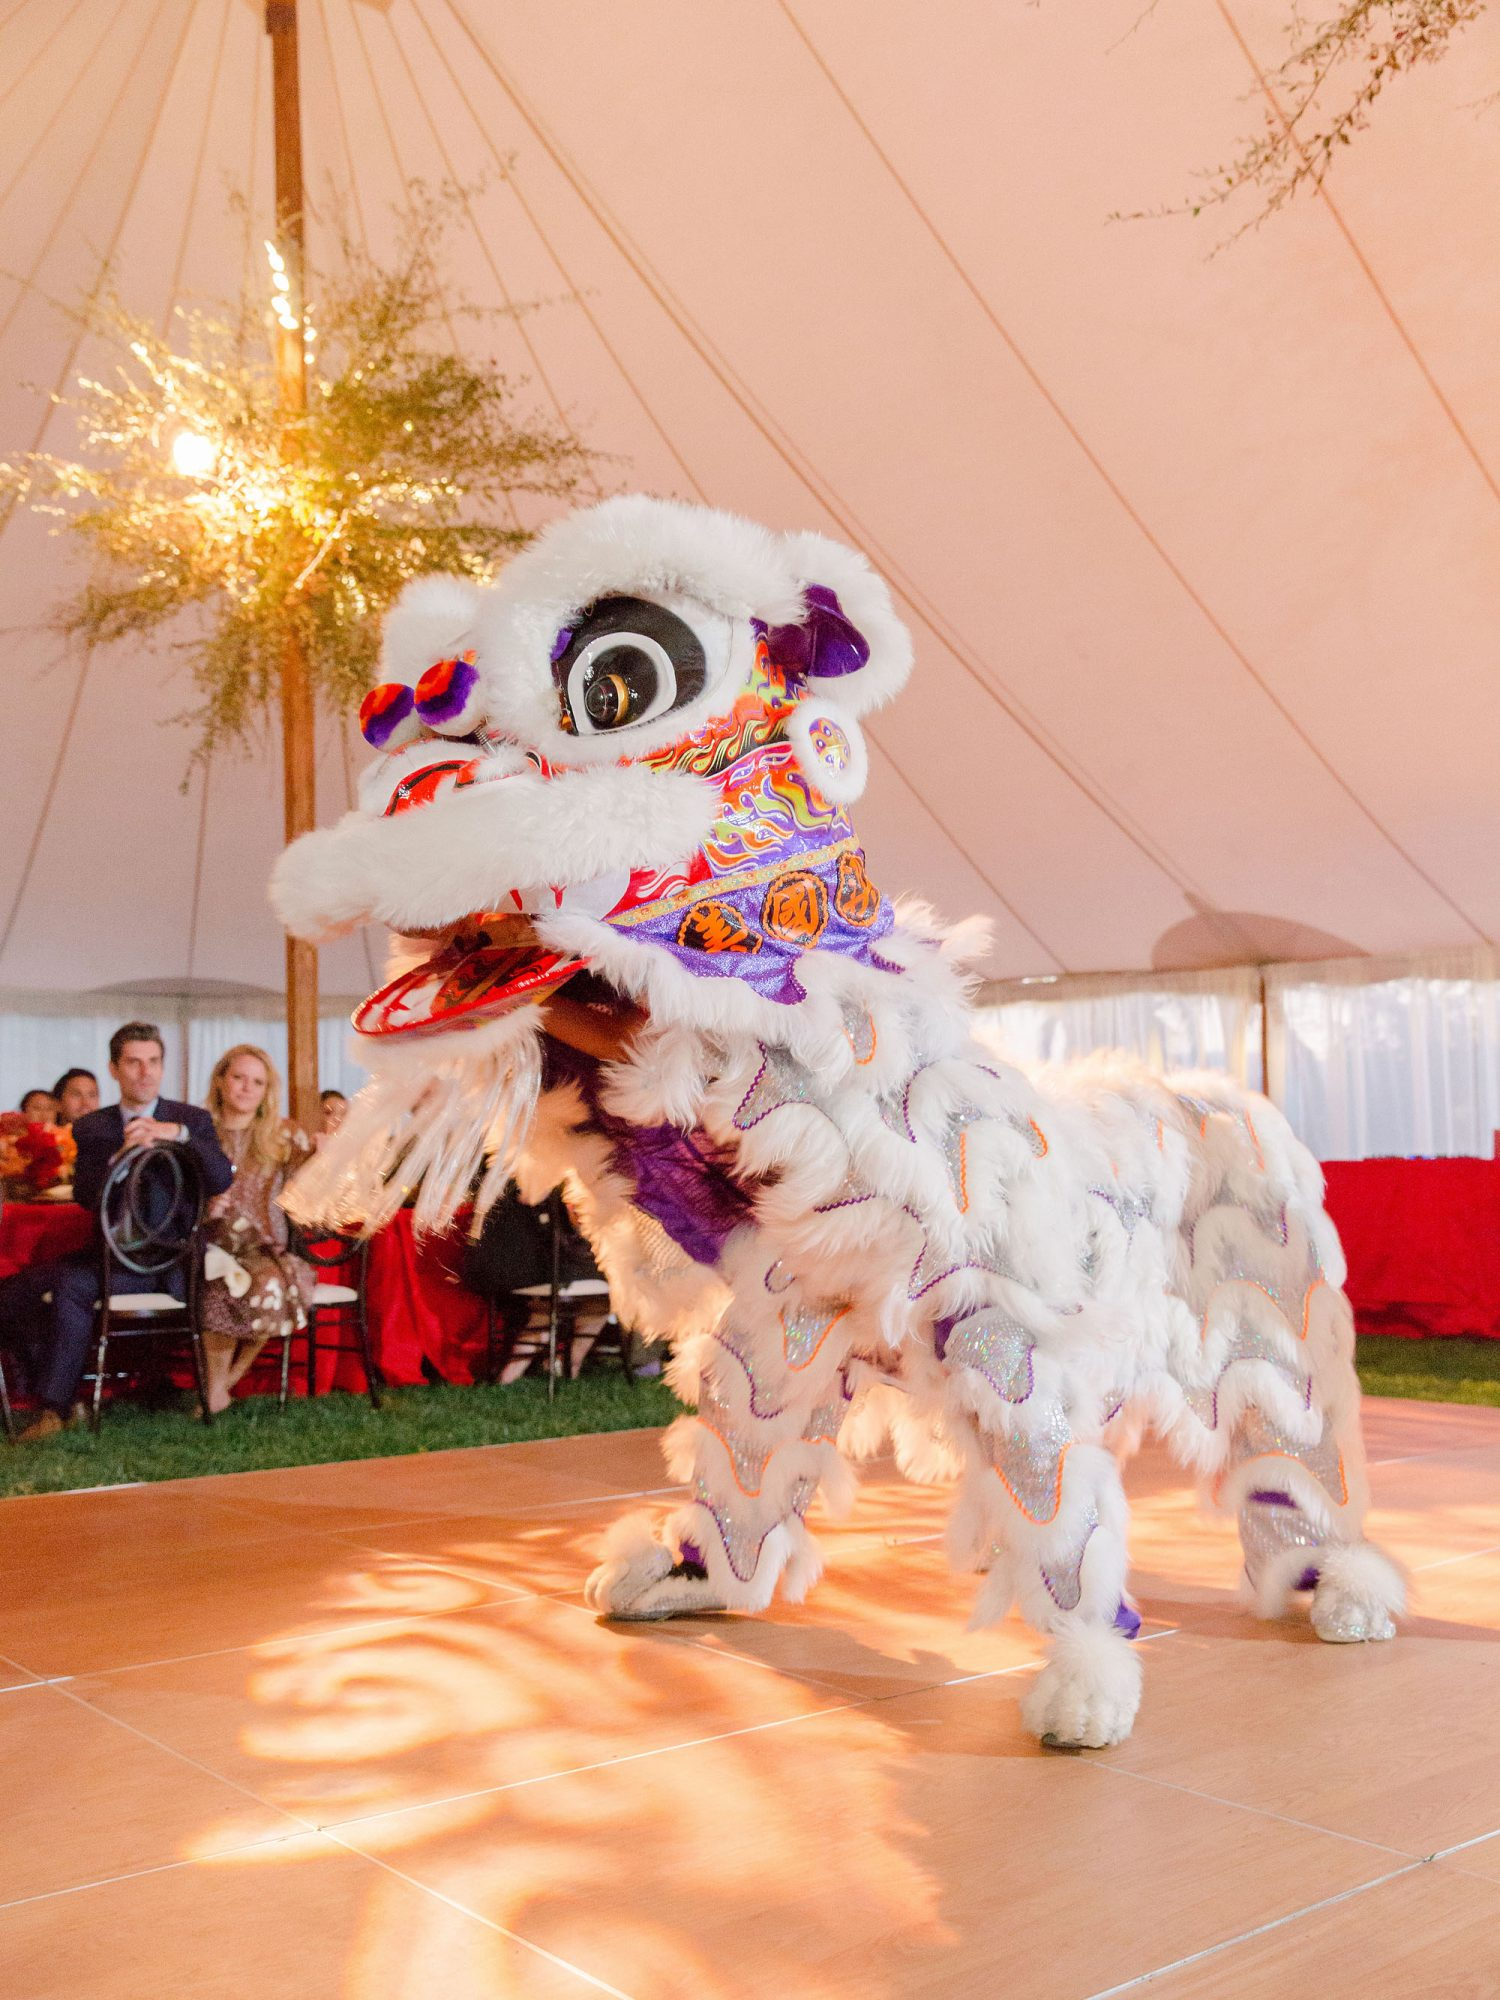 jenna alok wedding wine country california chinese lion dancers